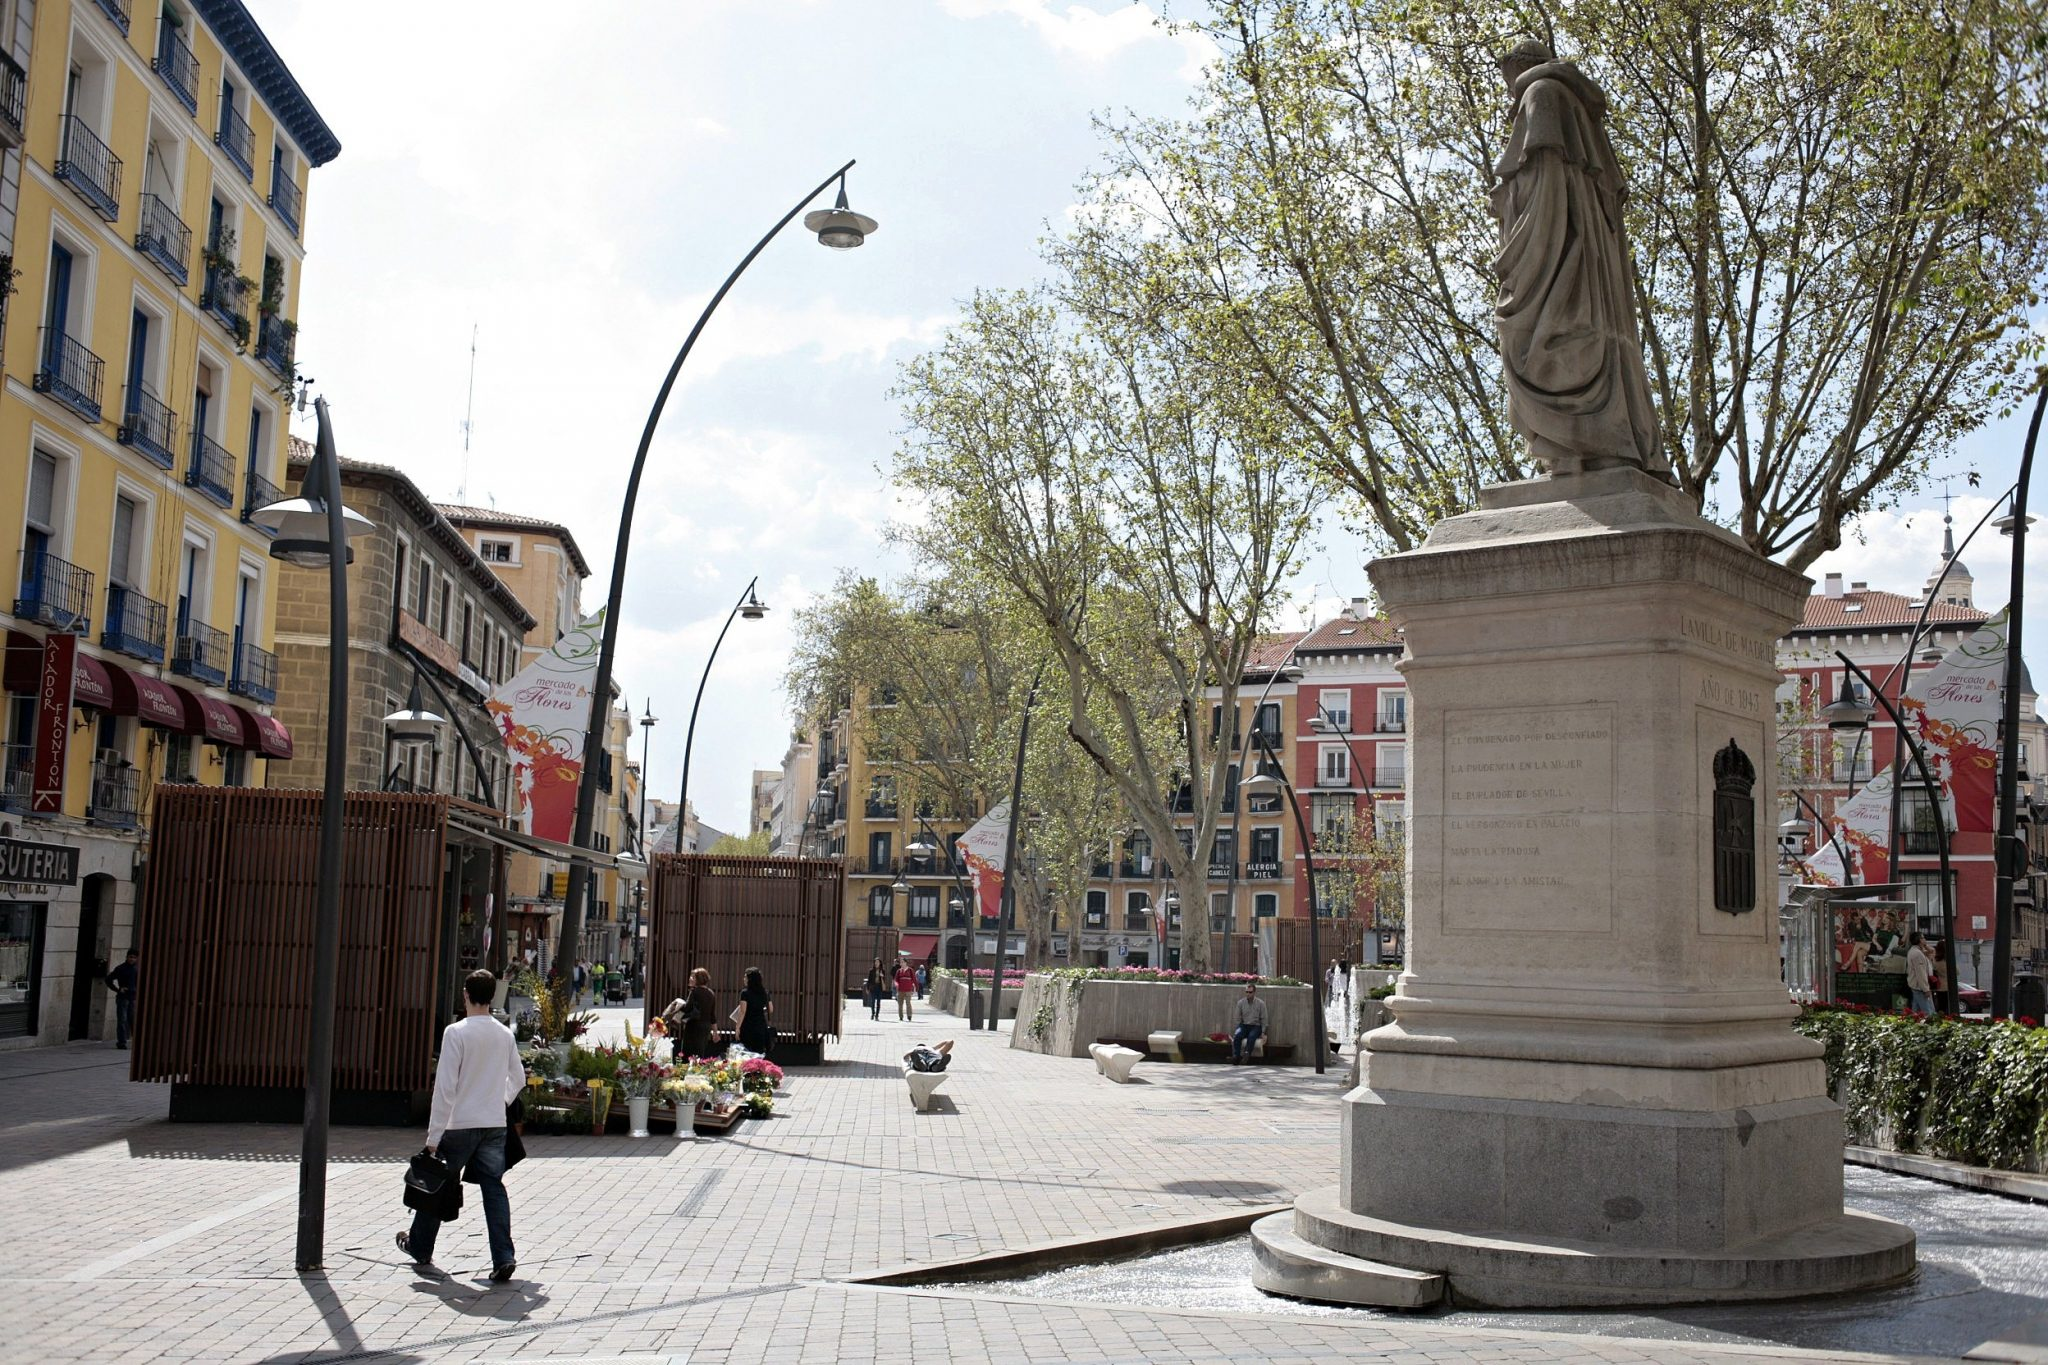 Being an expat in Madrid means walking the Plaza de Tirso de Molina in person (and often).